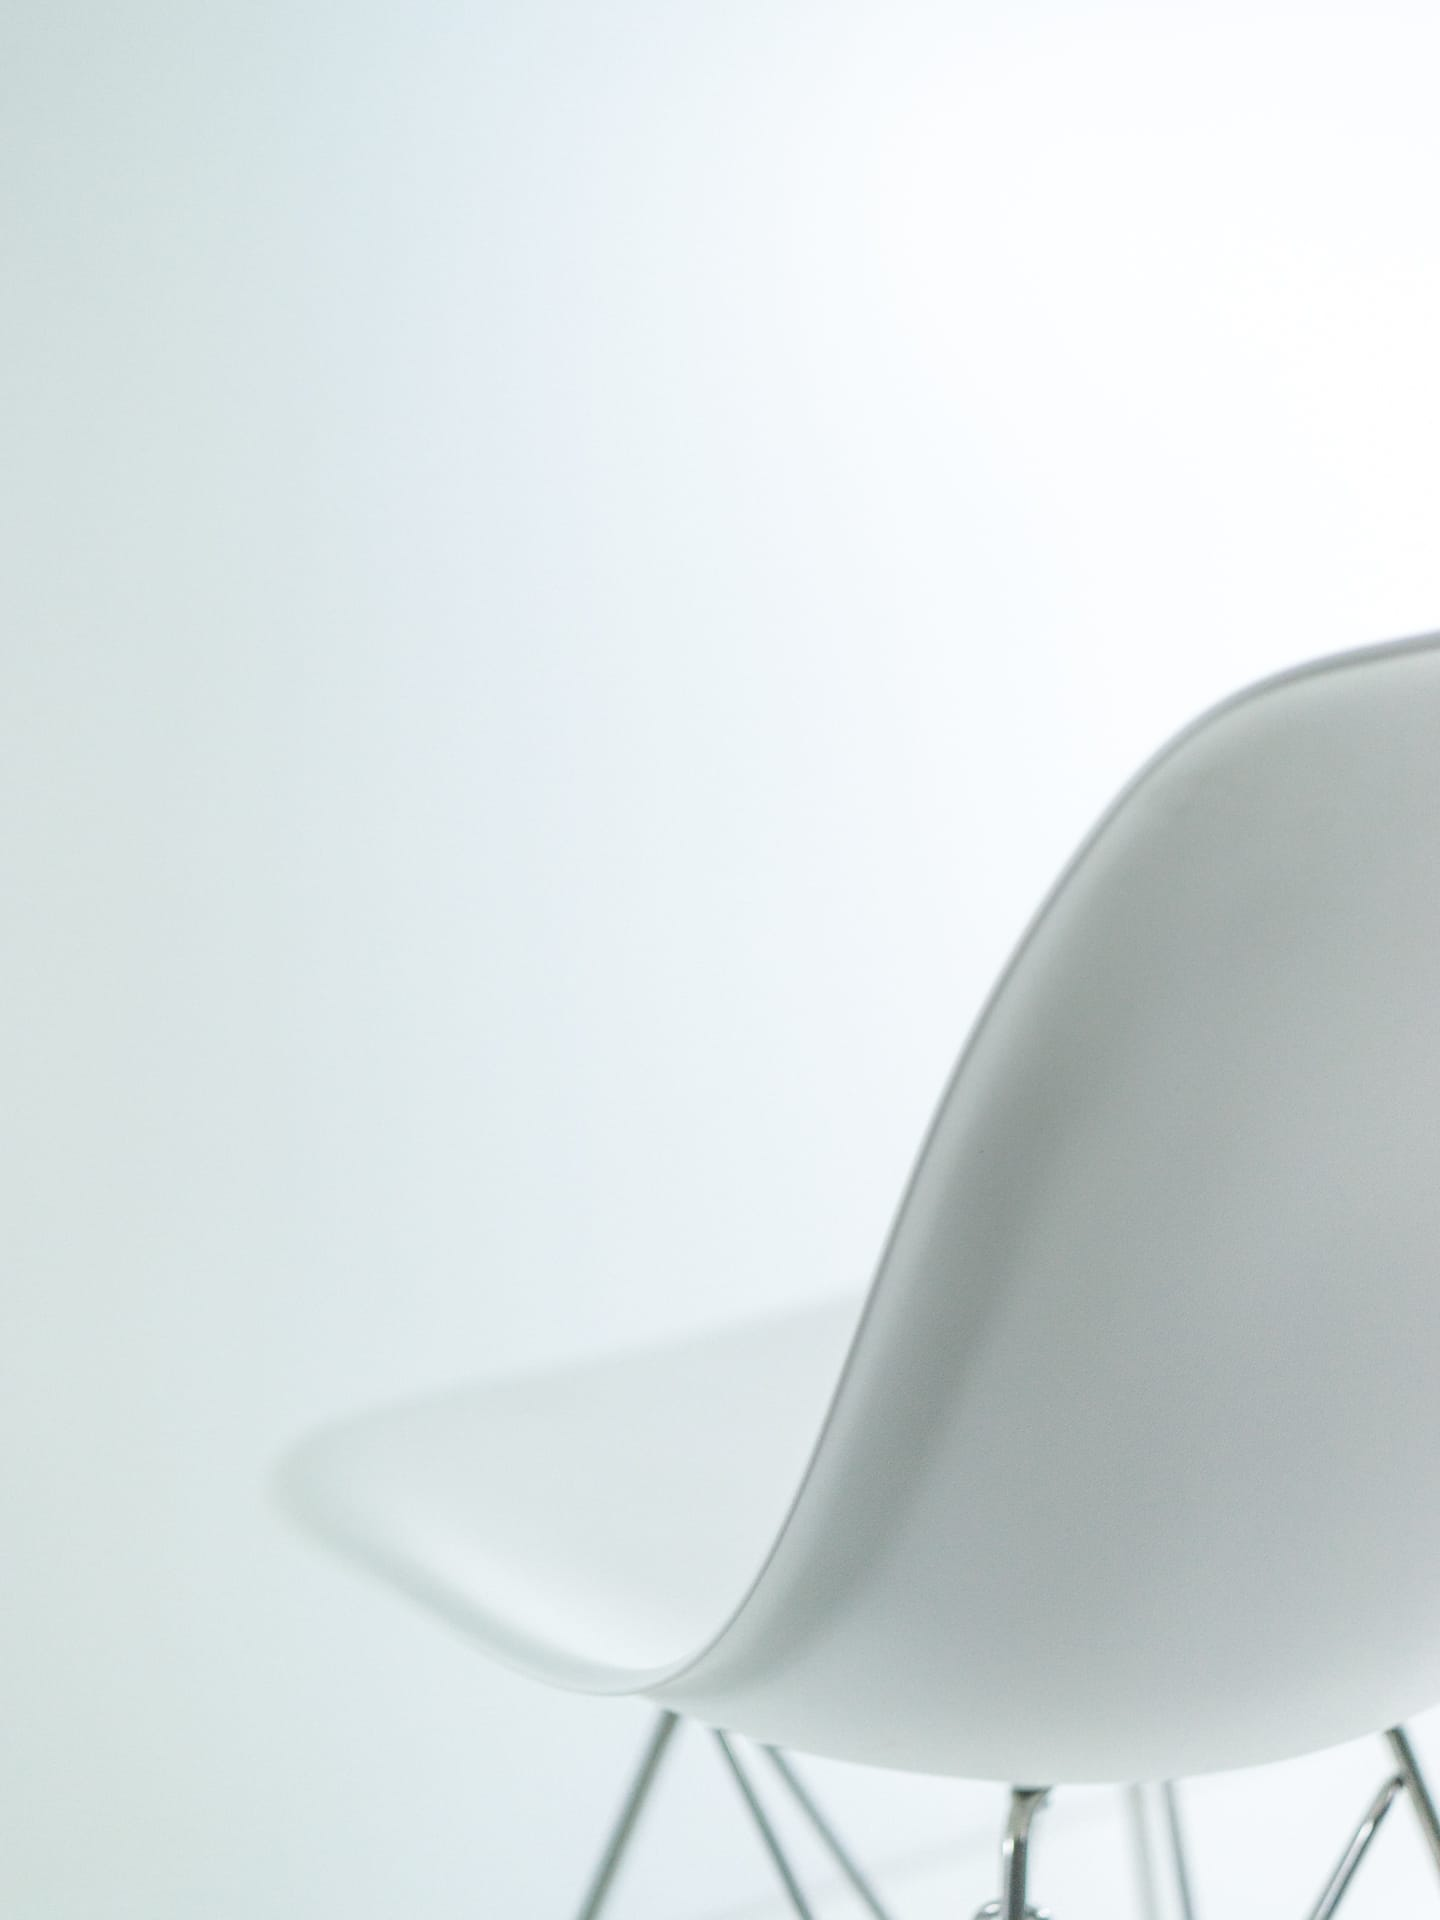 A Review Of The Herman Miller Eames Molded Plastic Side